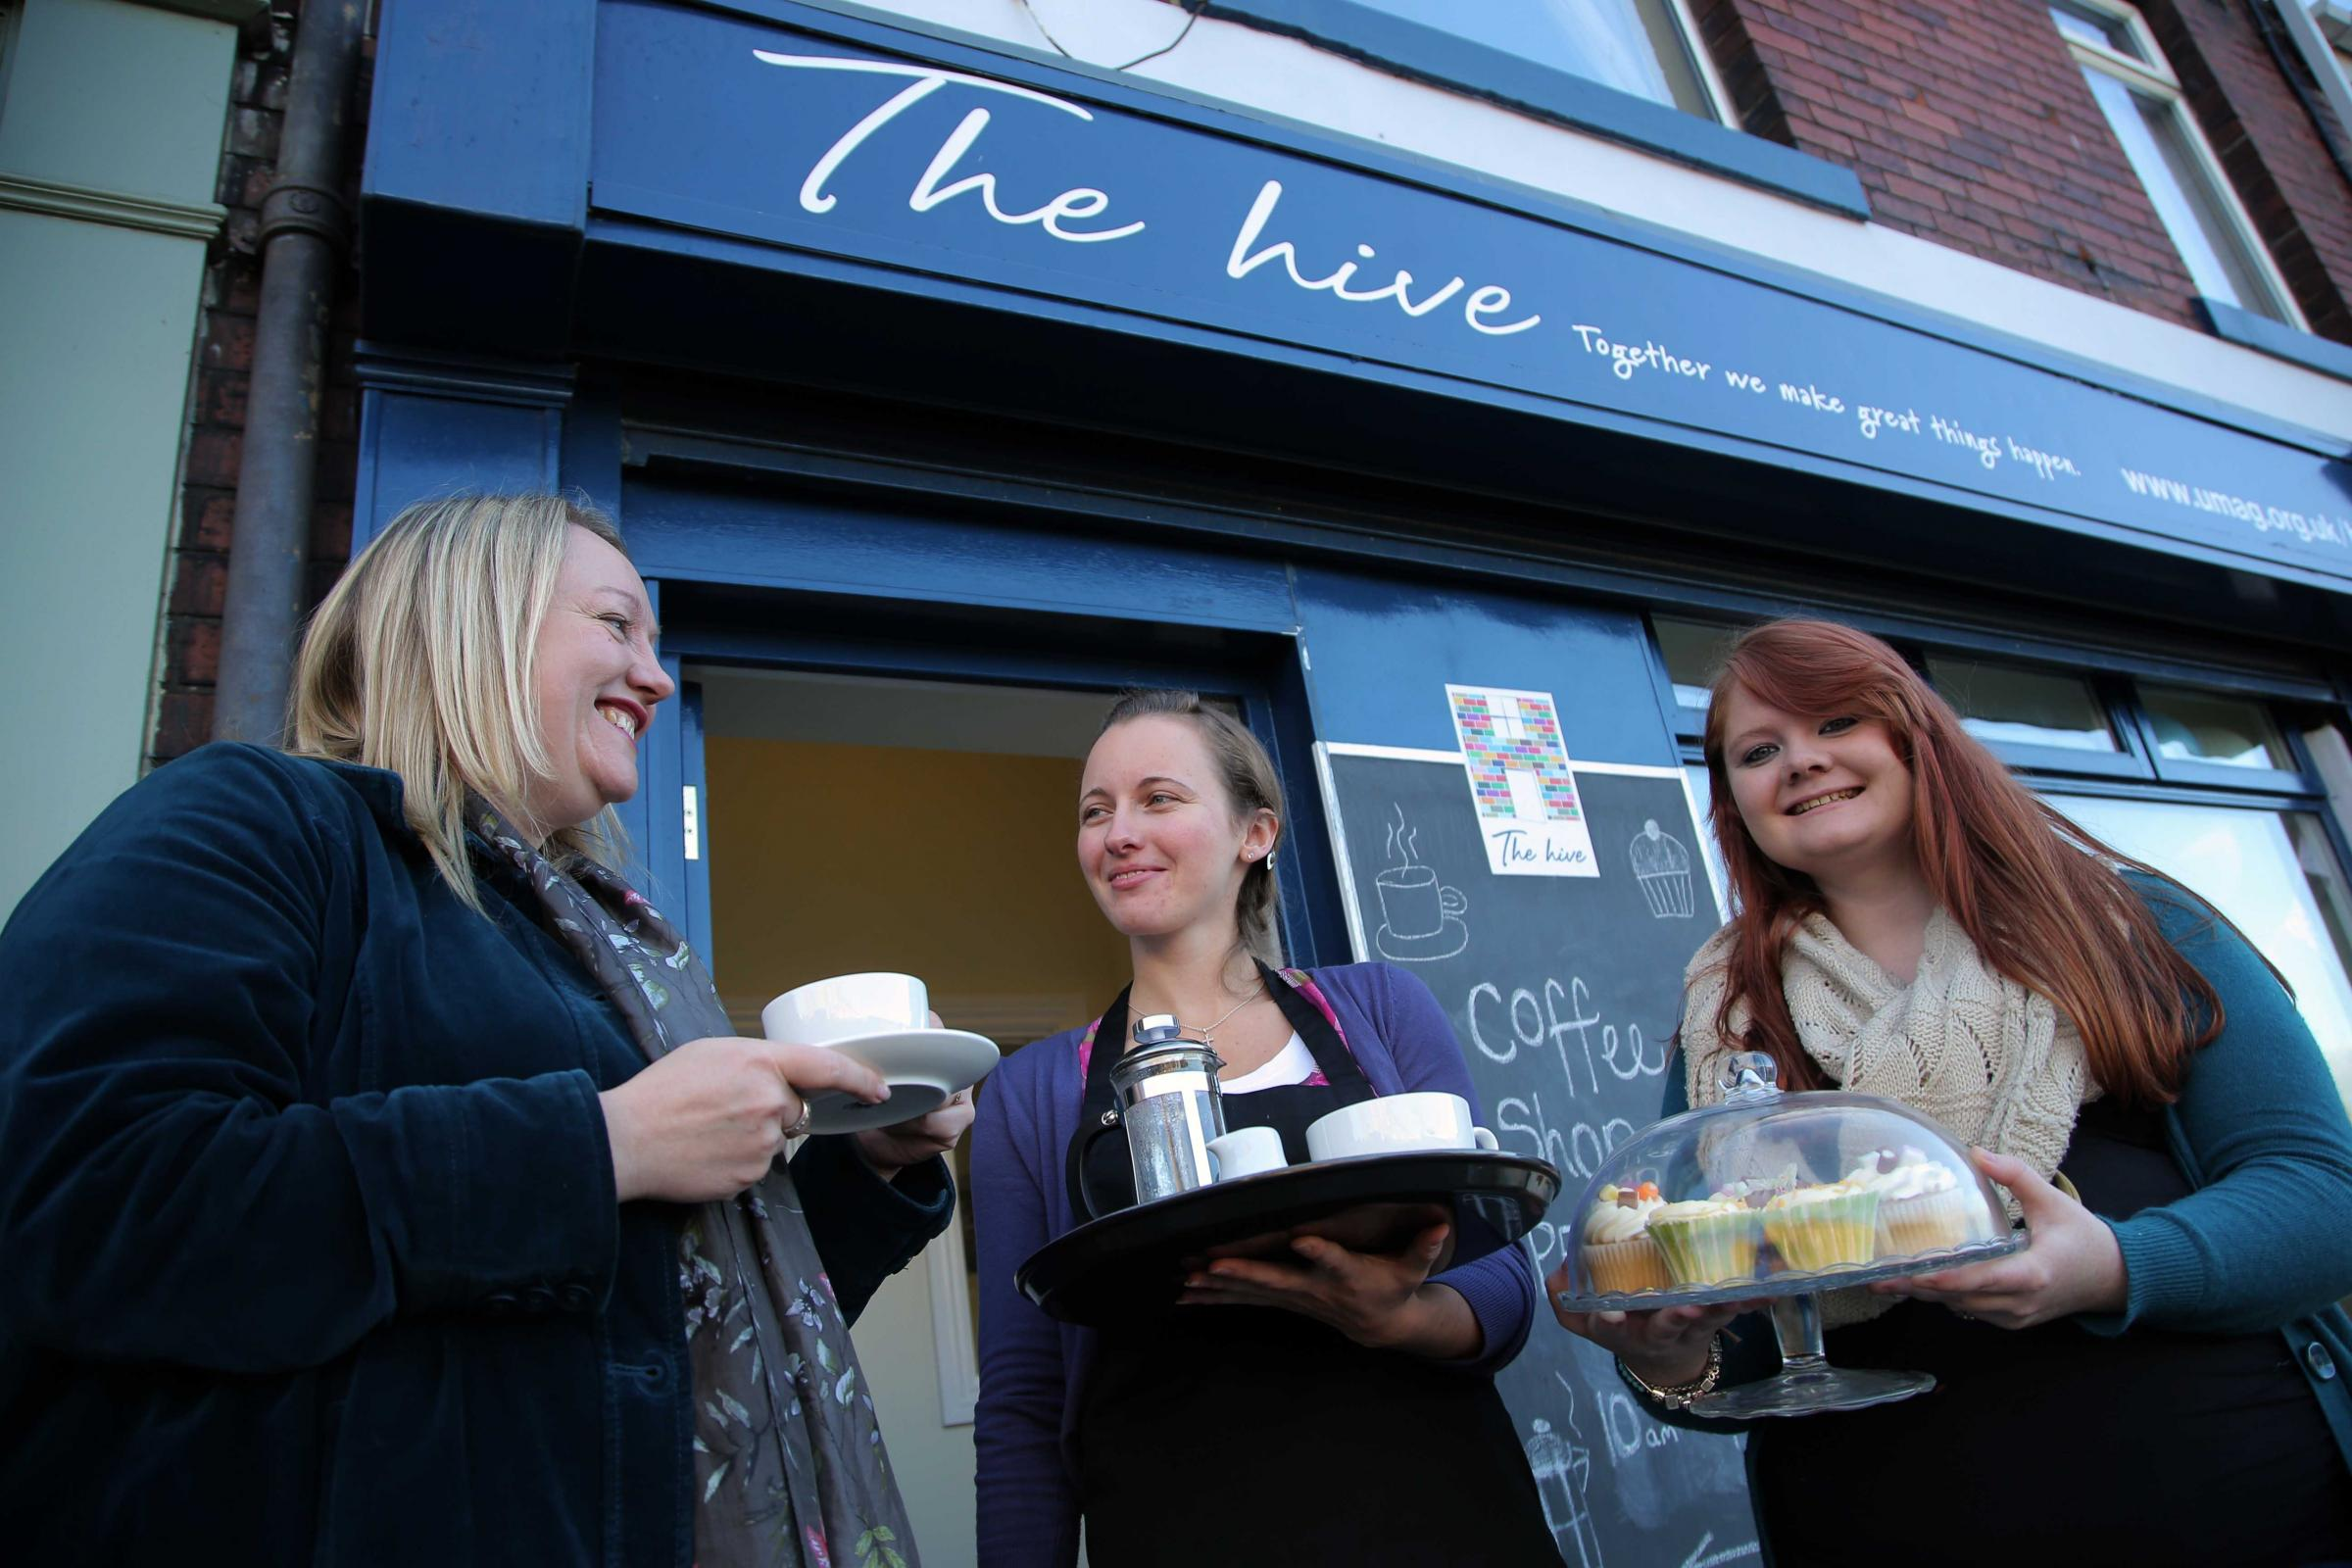 The opening of The Hive; a community cafe in Ushaw Moor. From left social entrepreneur Andrea Watts, Anne-Marie Booth and Rachel Shepherd, chair of Ushaw Moor Action Group